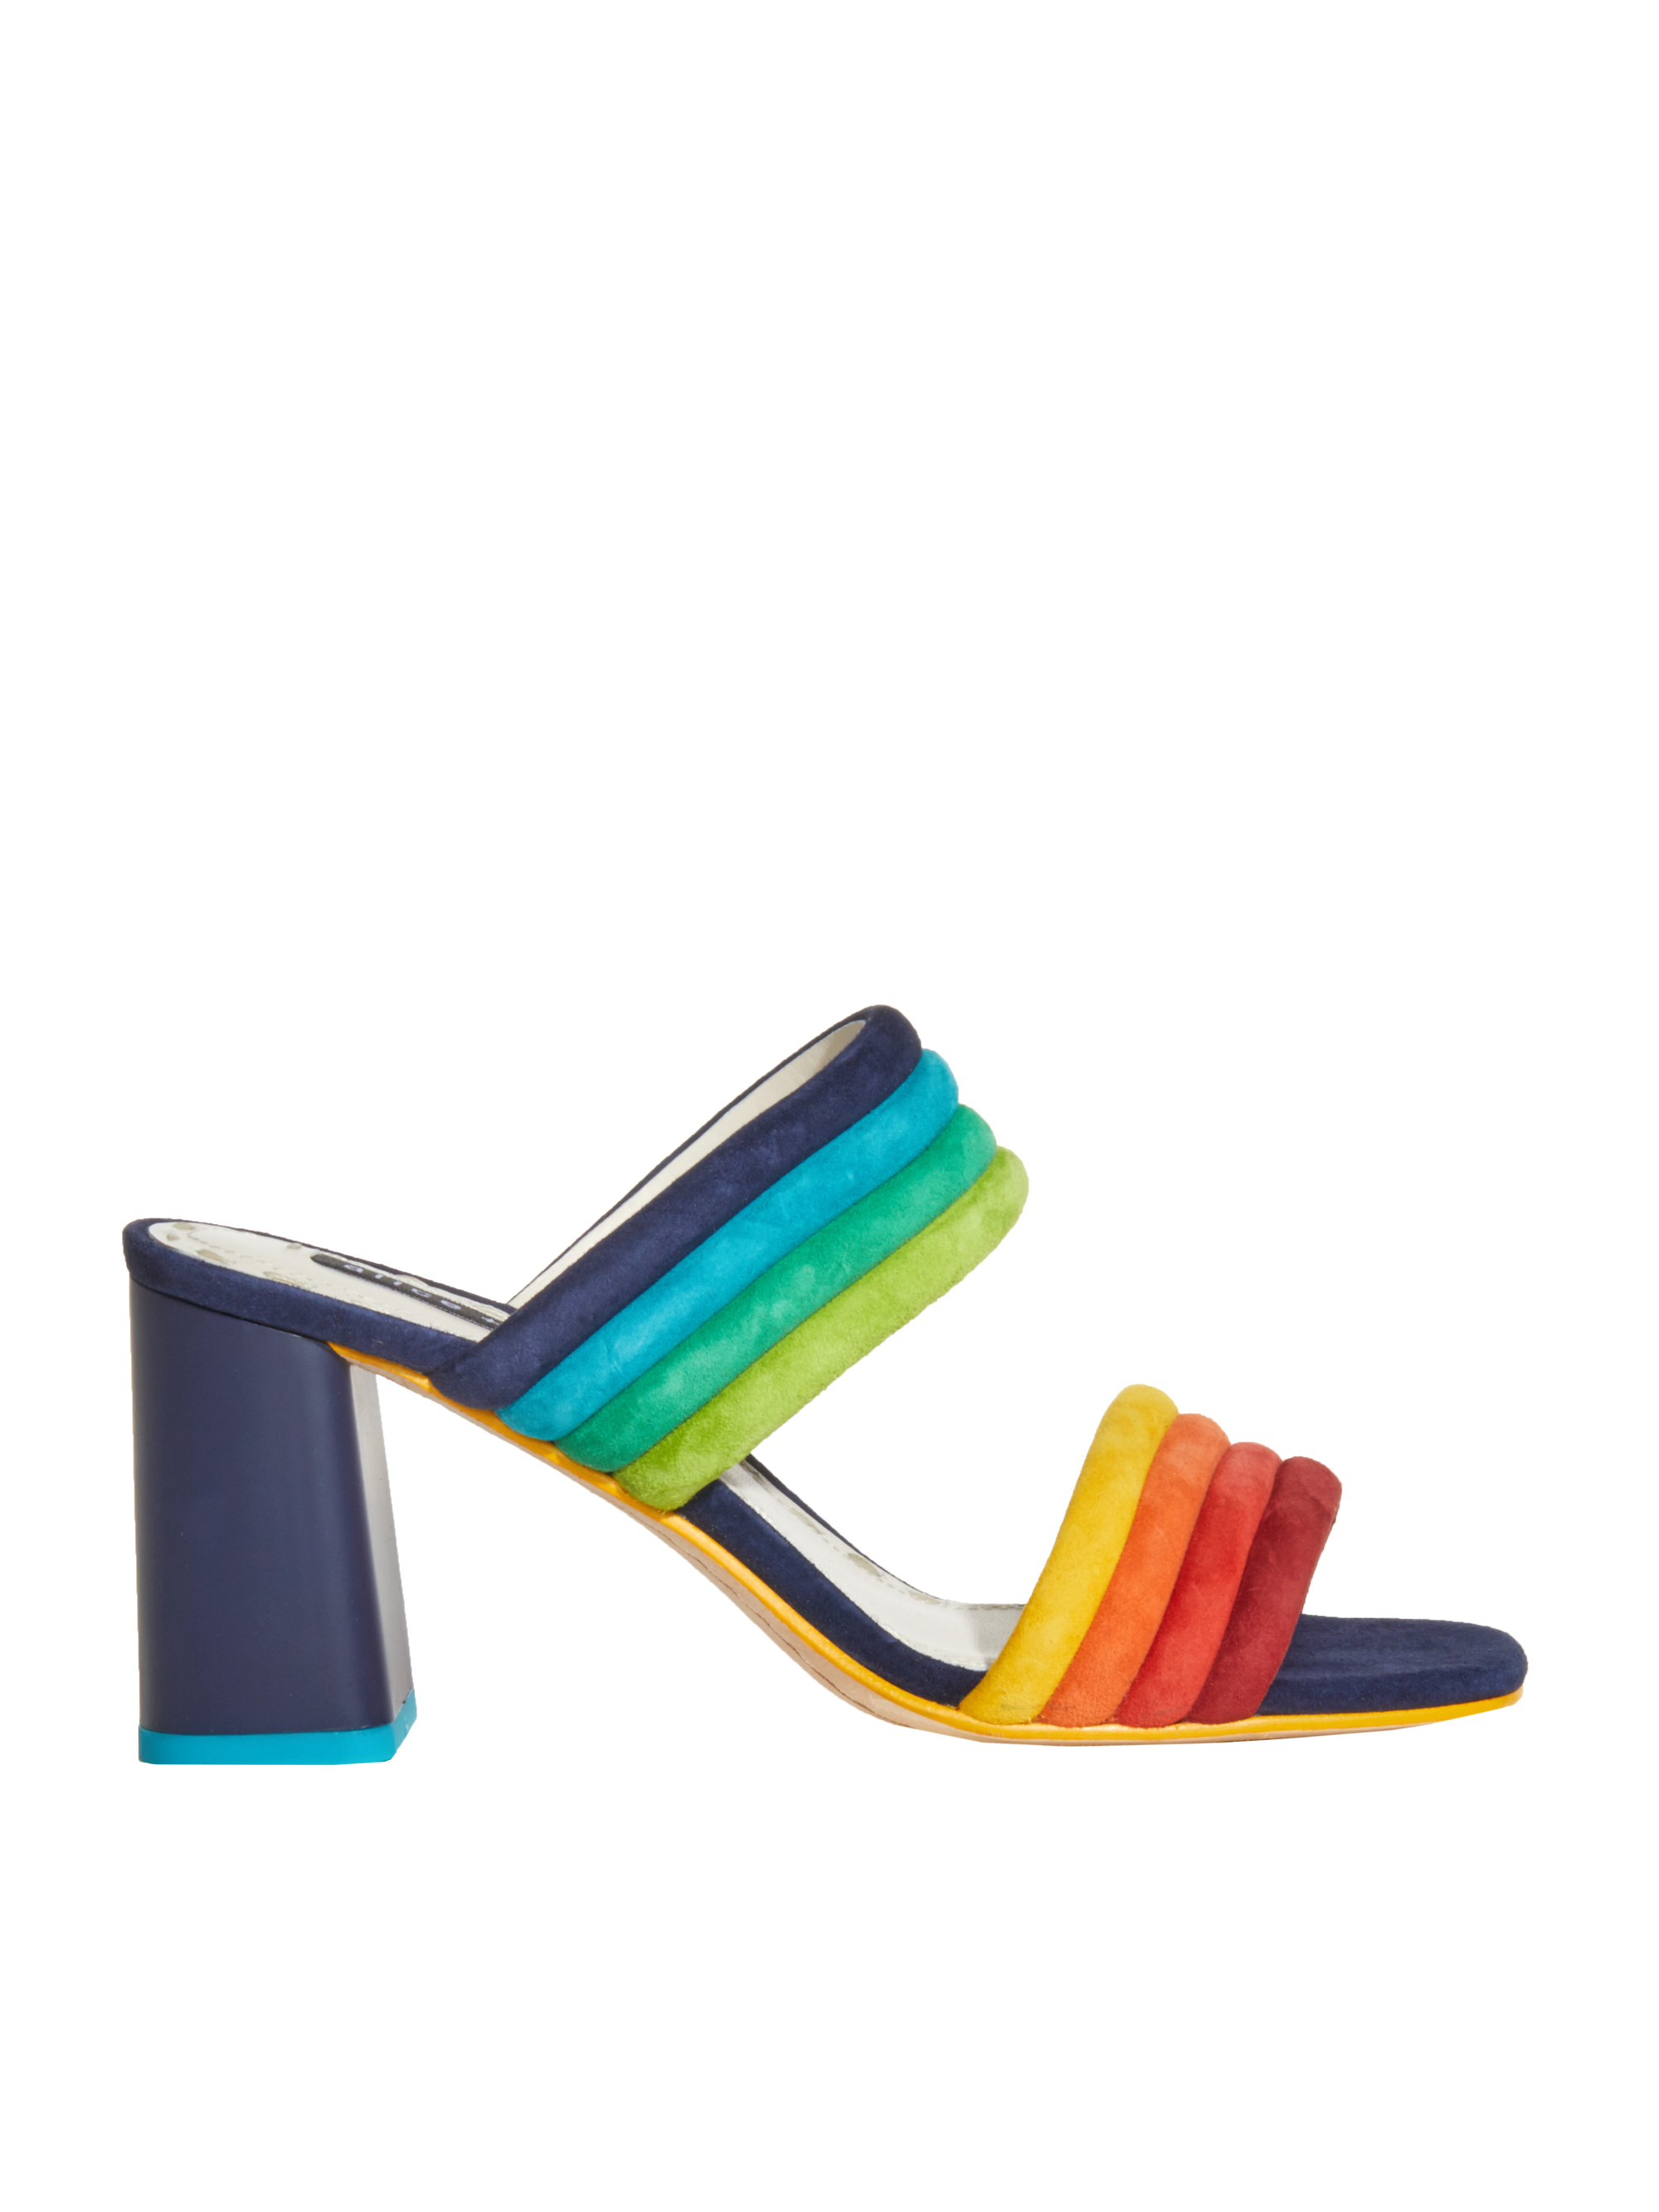 alice_and_olivia_MULTICOLBYSUEDEHEEL_SAPPHIRE_888445838552_PRODUCT_01--1584990787.jpg